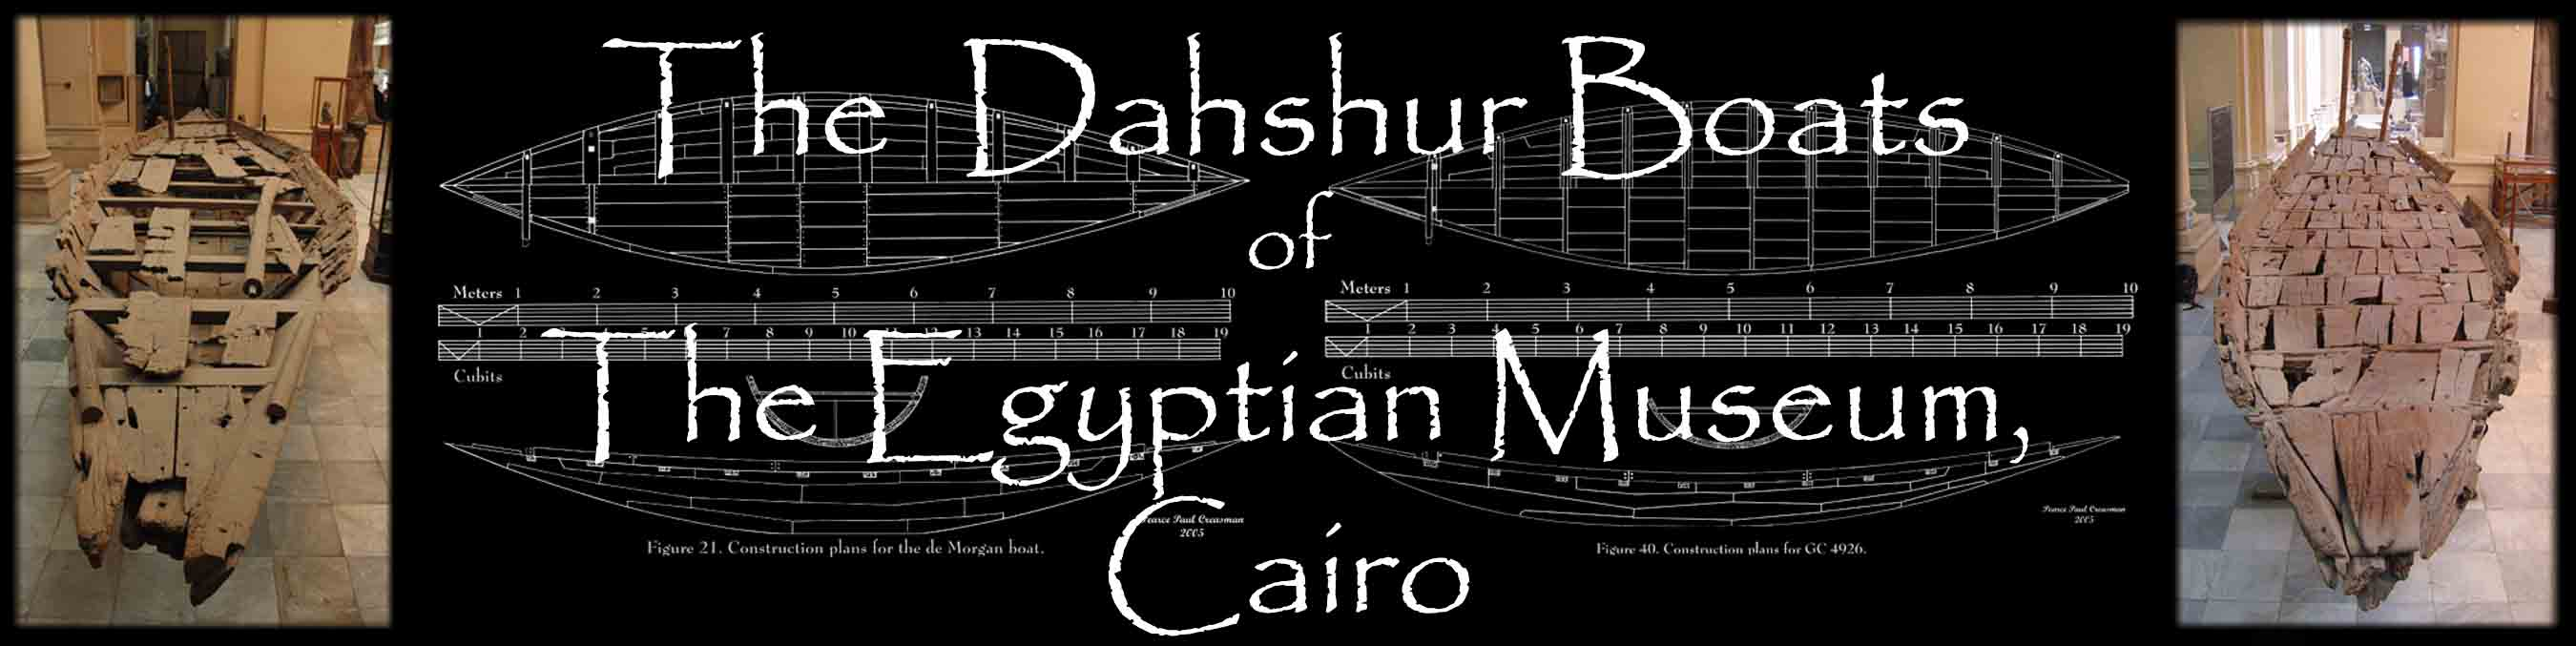 To The Cairo Dahshur Boats Homepage...